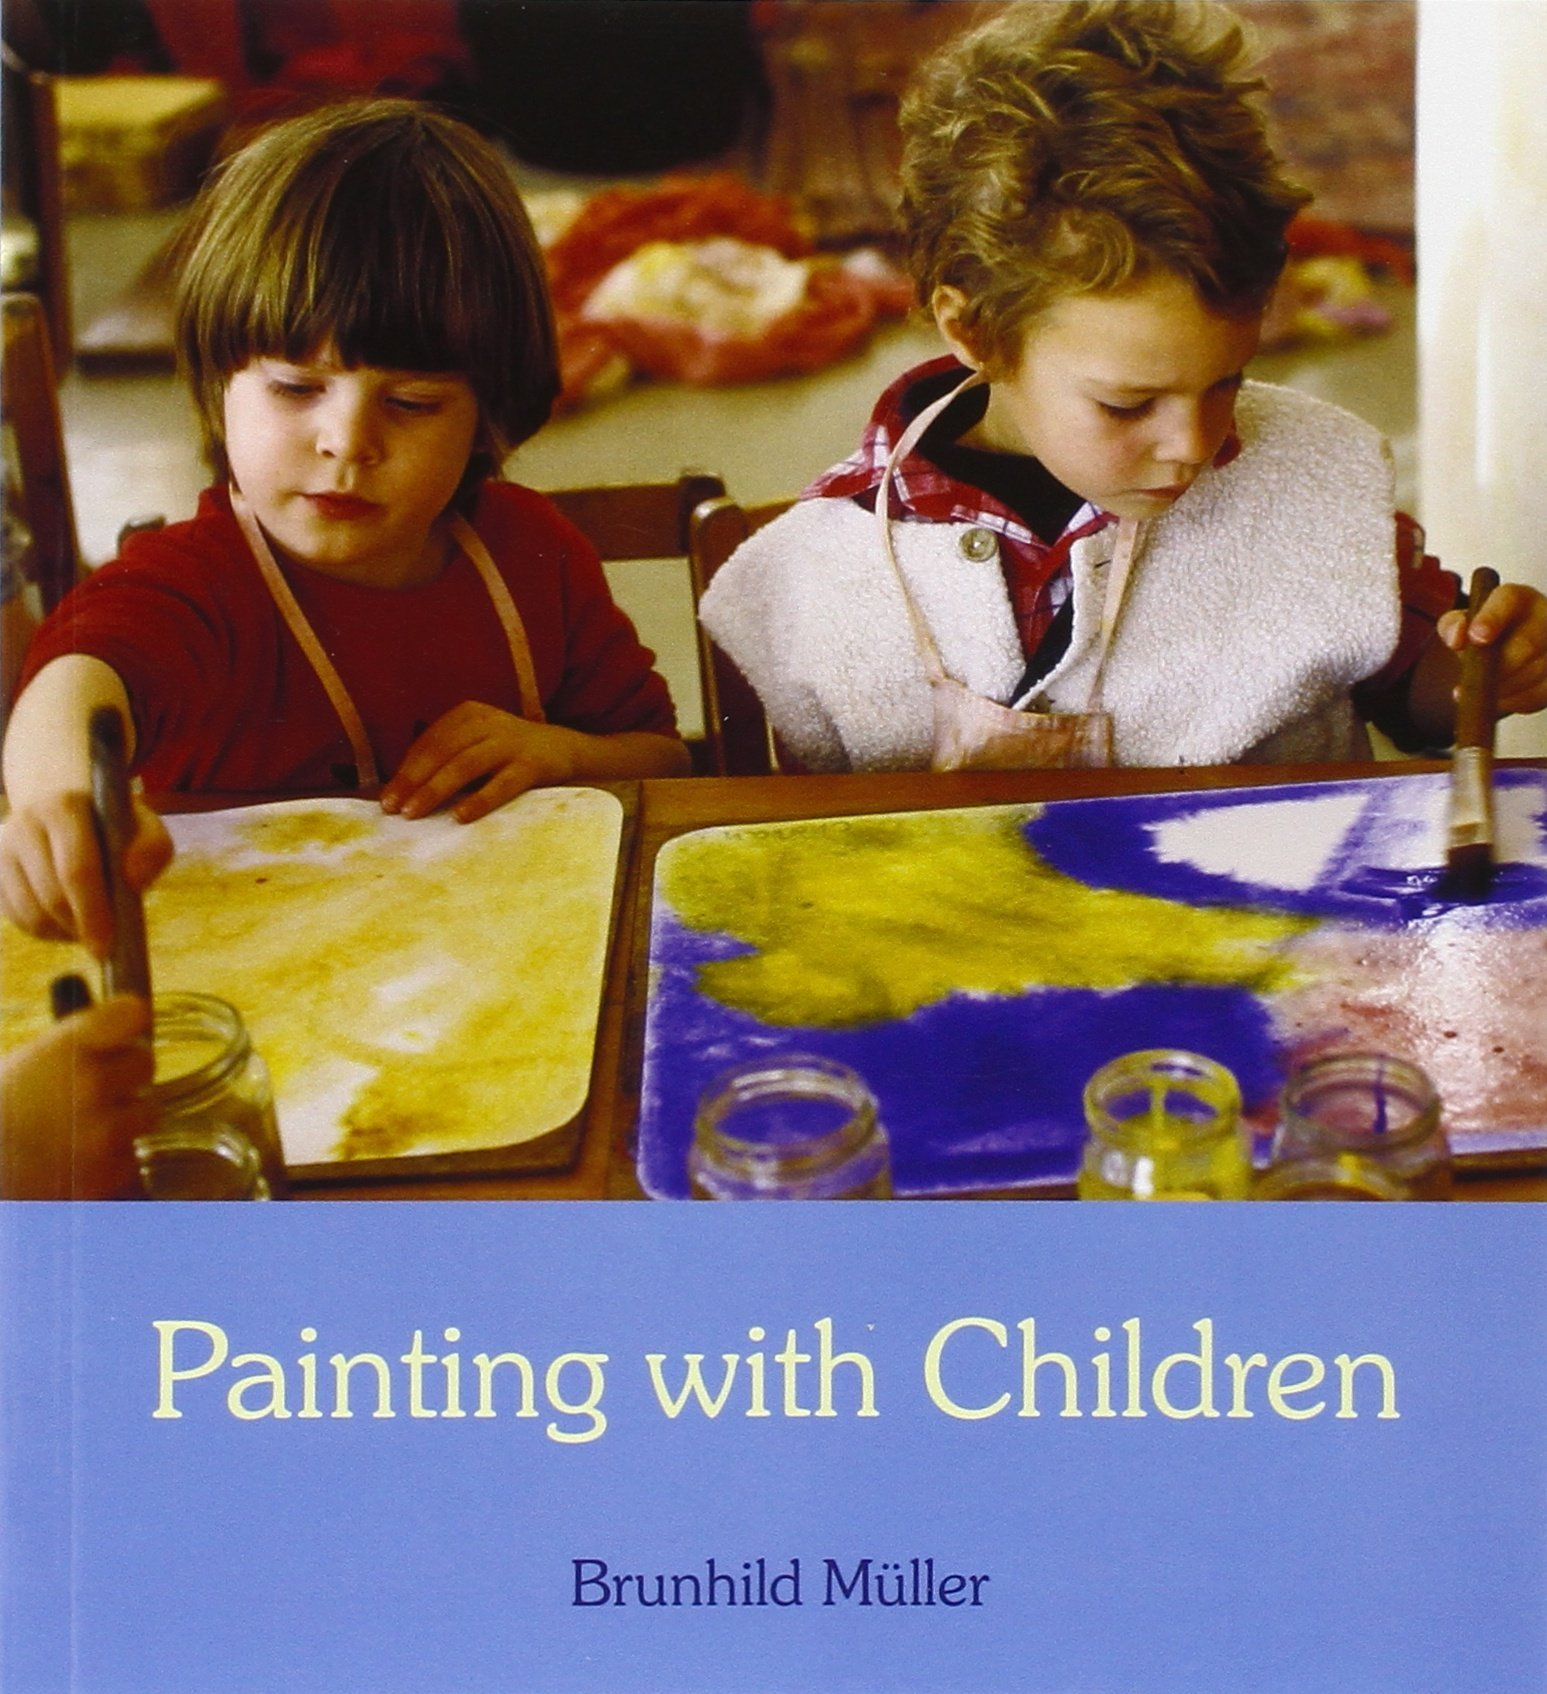 painting with children brunhild muller 9780863153662 amazoncom books - Children Painting Images